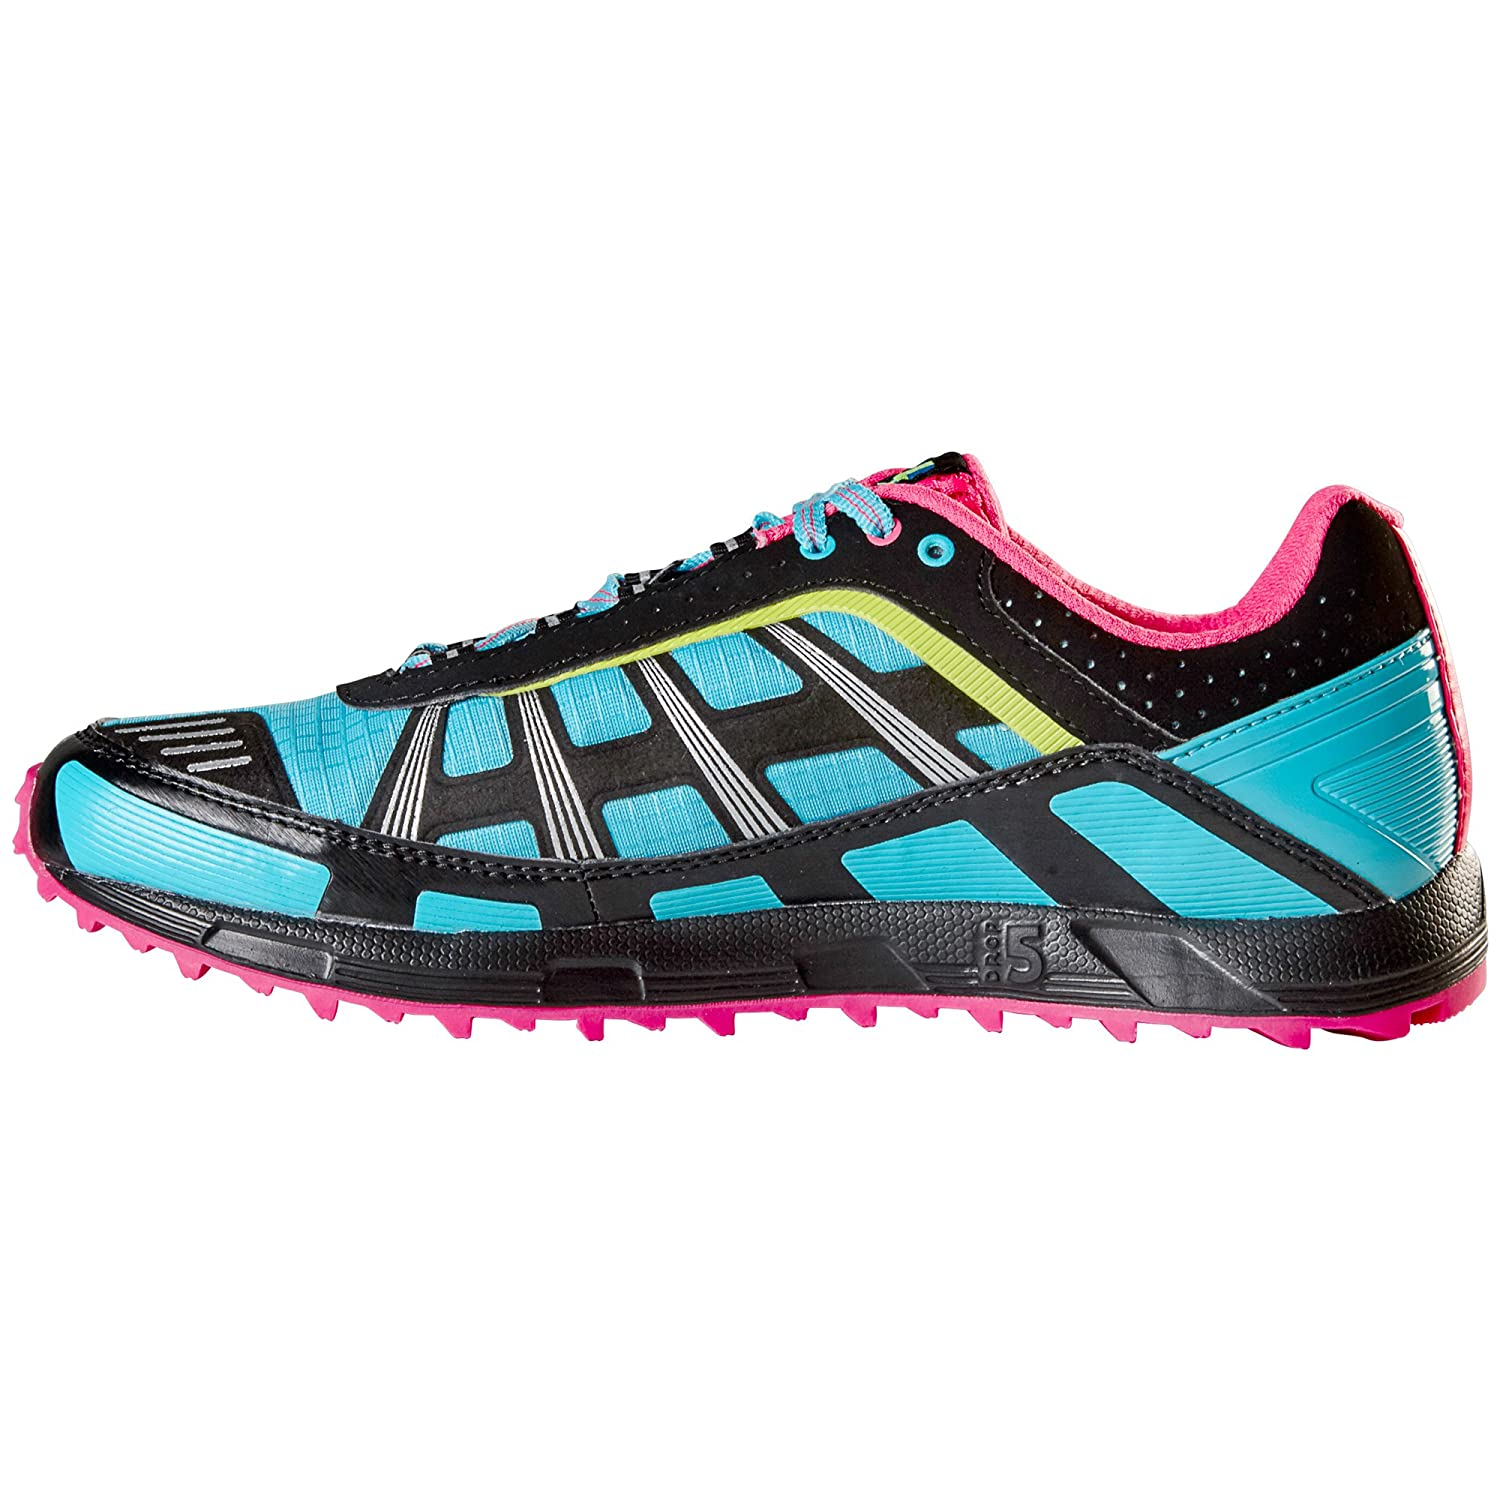 Salming Trail - T2 Women's Running Shoes - Trail SS16 B01C250W3A 7.5 B(M) US|Black 3581d9